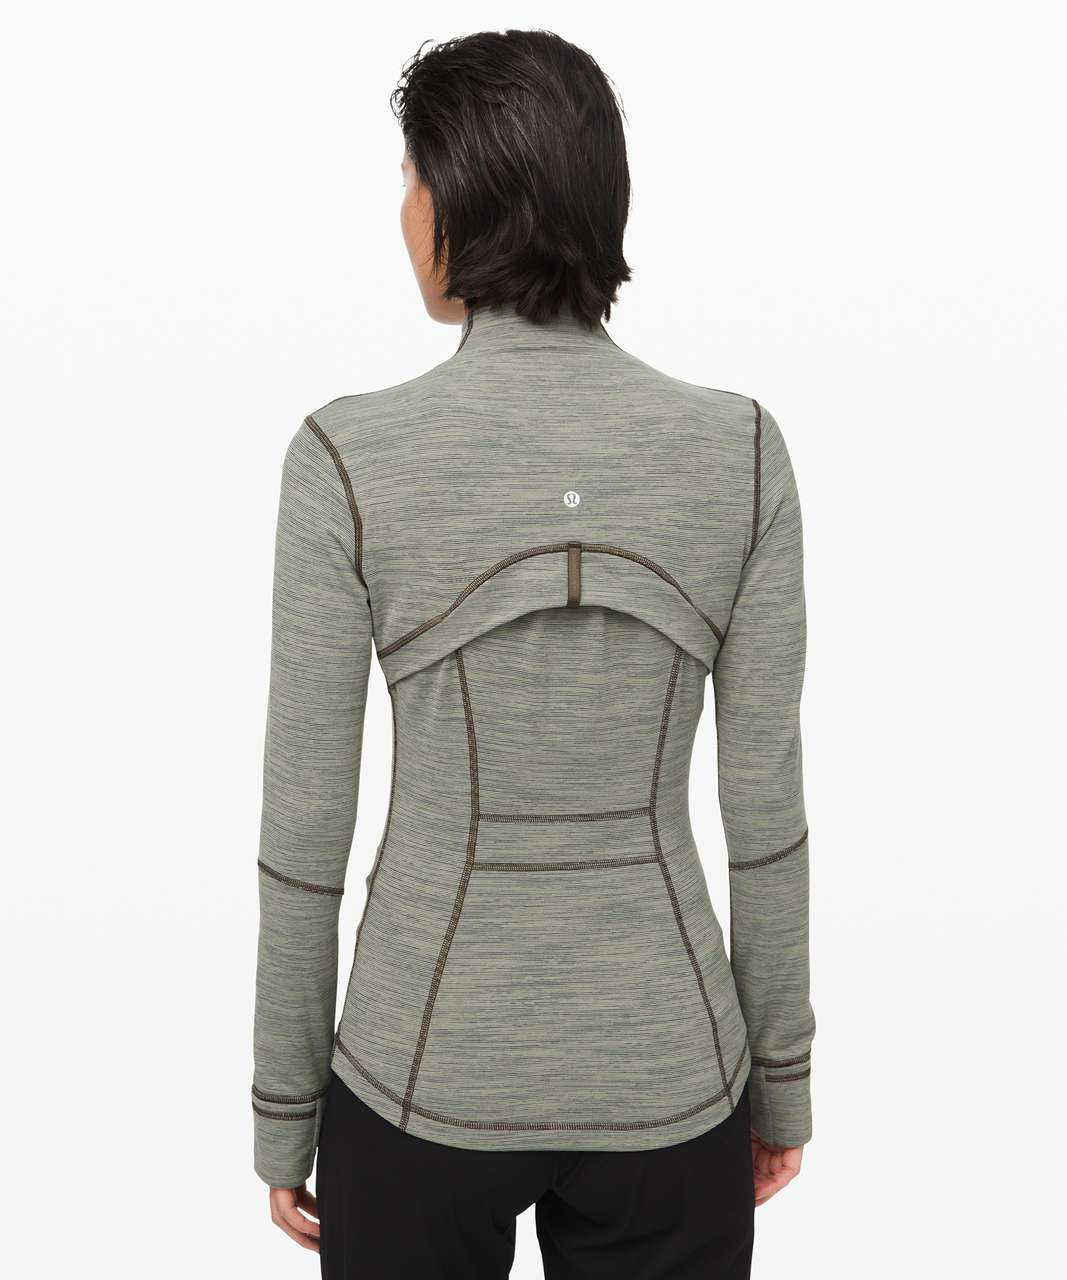 Lululemon Define Jacket - Wee Are From Space Sage Dark Olive